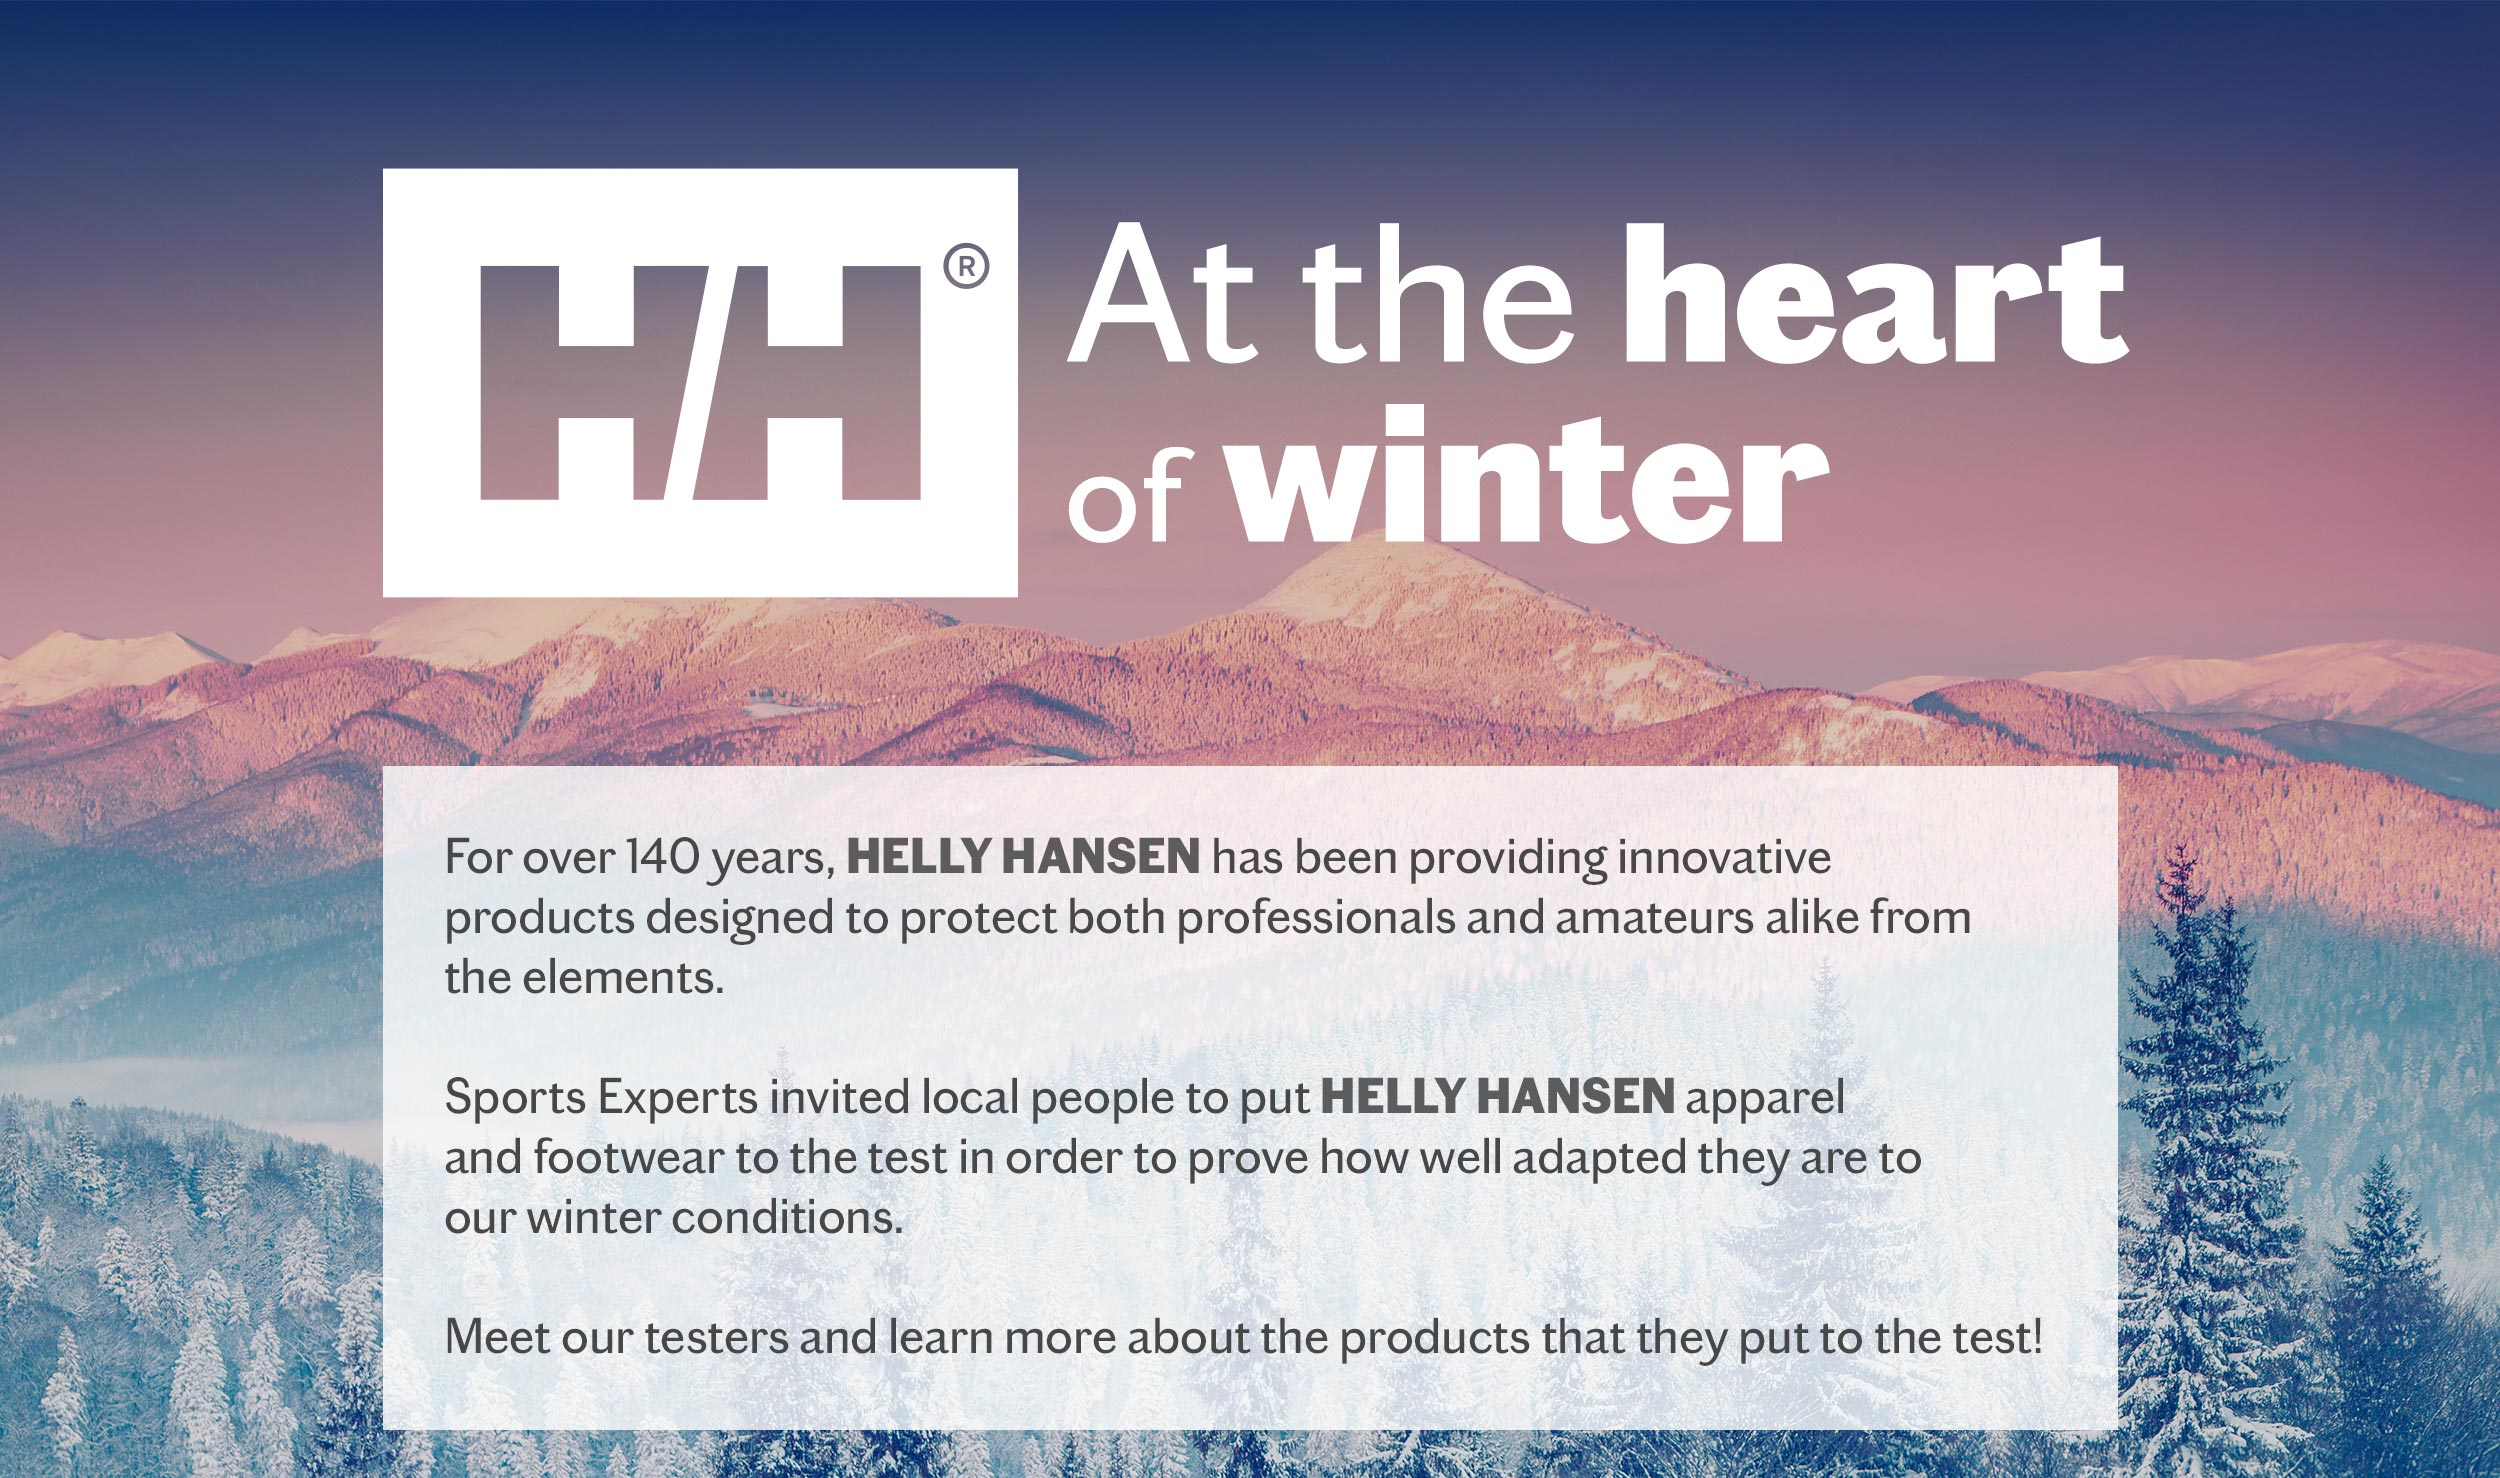 HELLY HANSEN - AT THE HEART OF WINTER